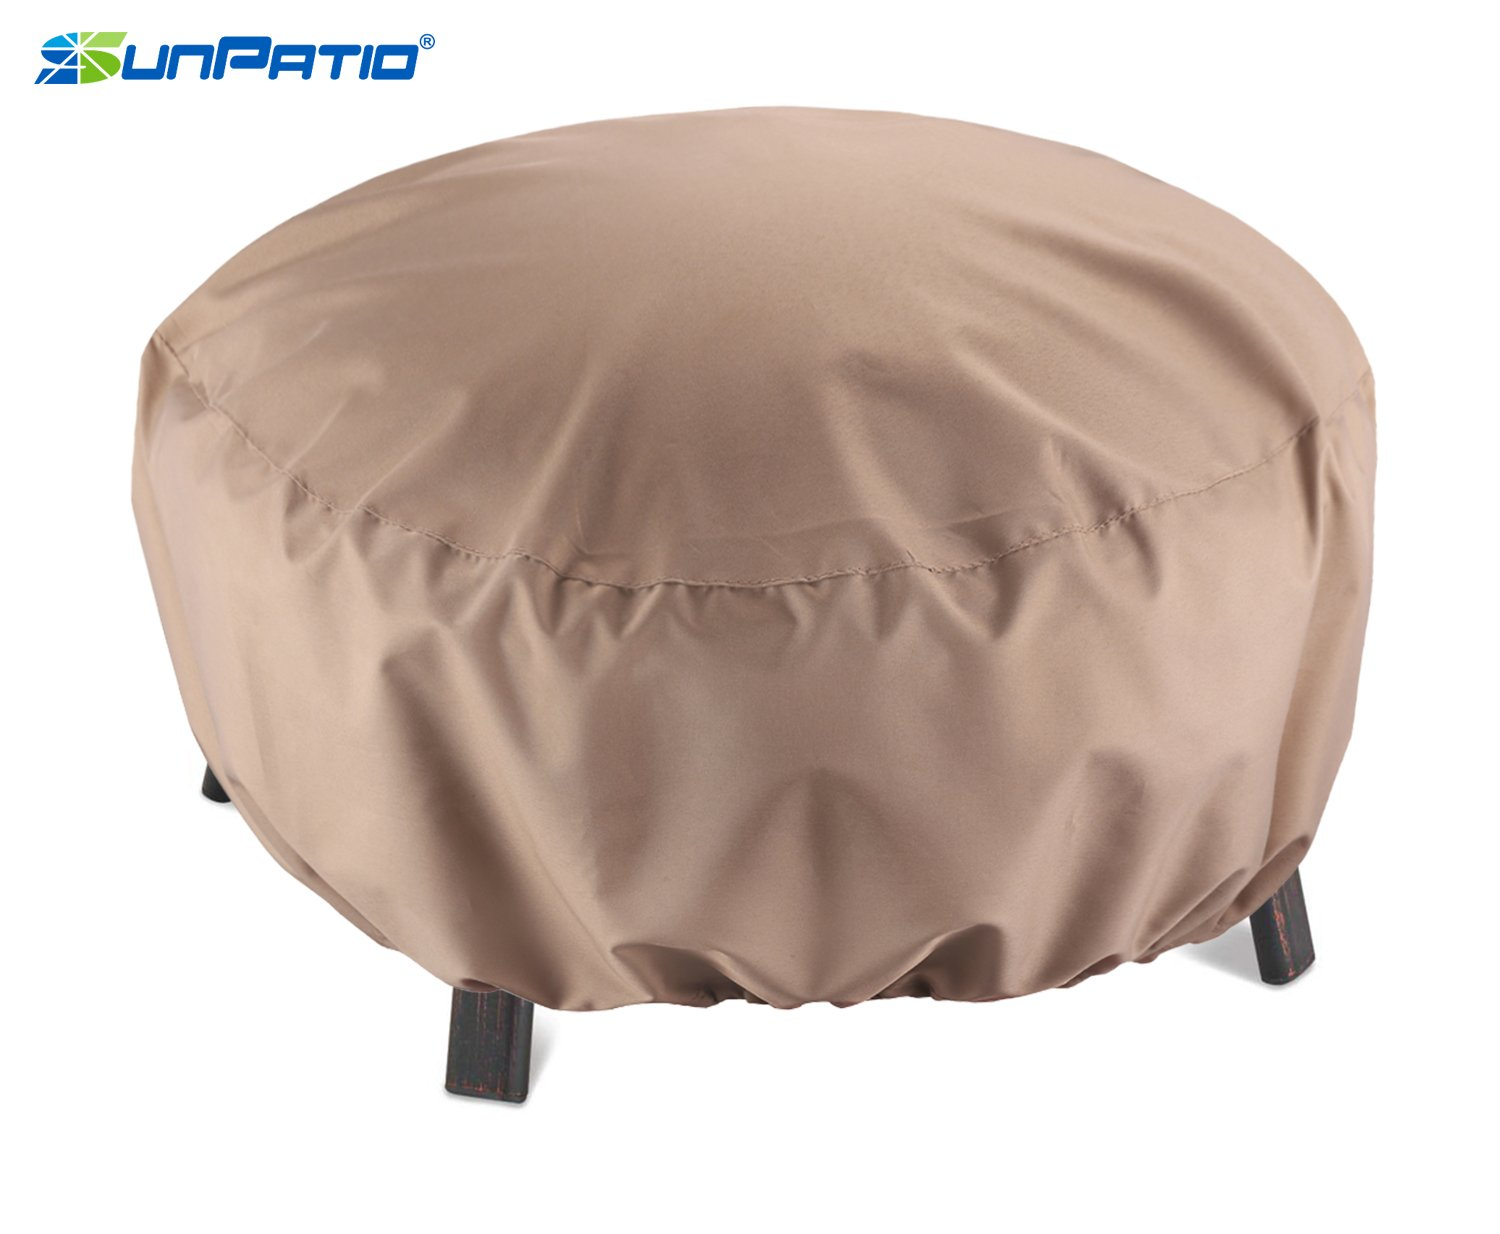 """SunPatio Outdoor Fire Pit Cover, Round Fire Bowl Cover, Kettle Ottoman Cover, 32""""Diax14""""H, Water Resistant, Lightweight, Eco-Friendly Furniture Cover with Adjustable Drawstring, Neutral Taupe"""